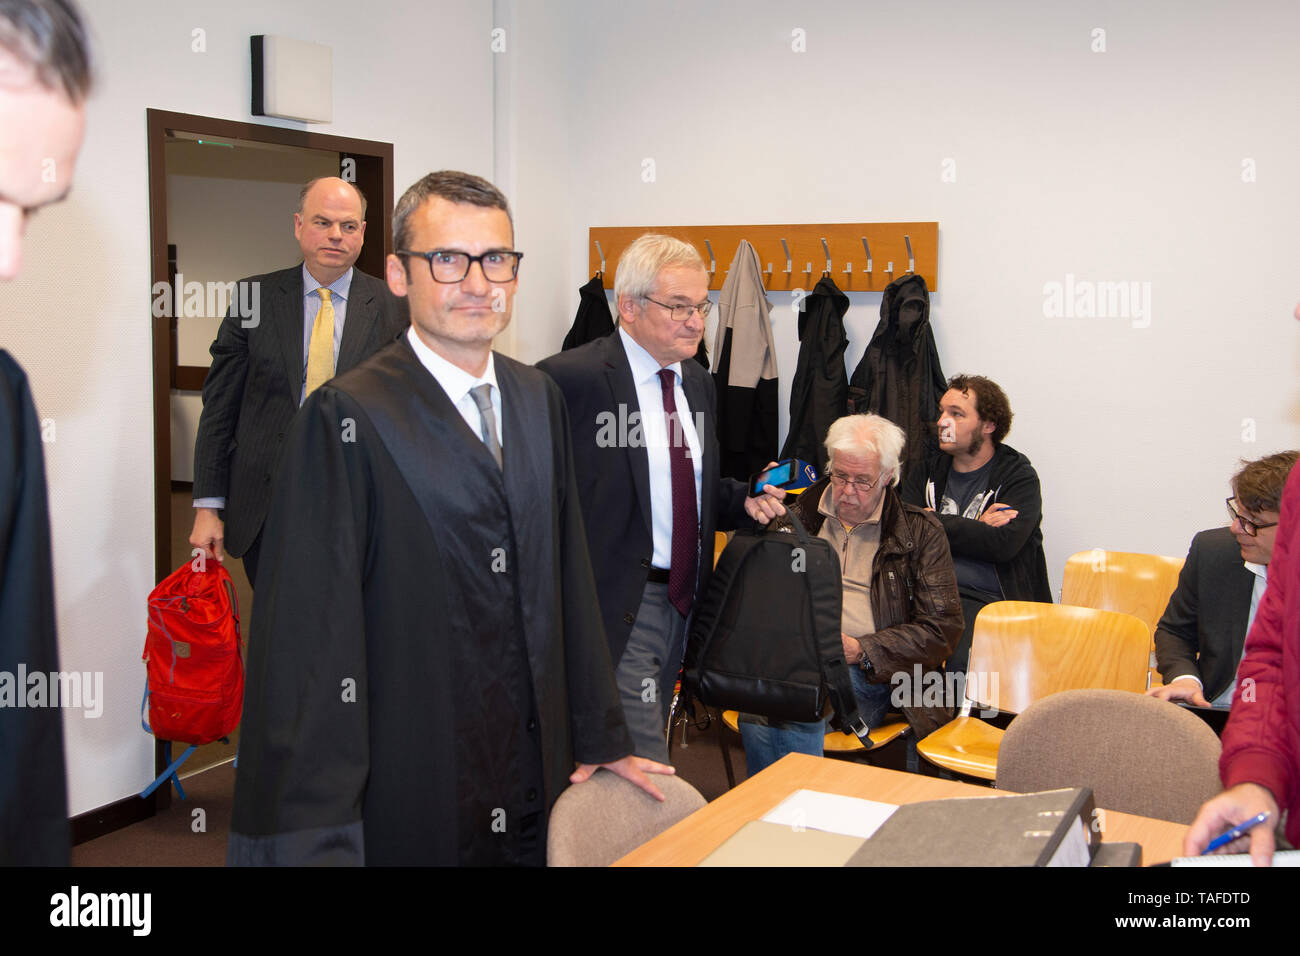 The invited as a witness Peter KOHL, son of Helmut Kohl, enters the hall, proceedings of Maike Kohl-Richter versus author Heribert Schwan and the Spiegel Verlag on the book VERMAECHTNIS, whether more passages should be banned and the amount of profits achieved on 22.05. 2019 before the district court Koeln,   usage worldwide - Stock Image